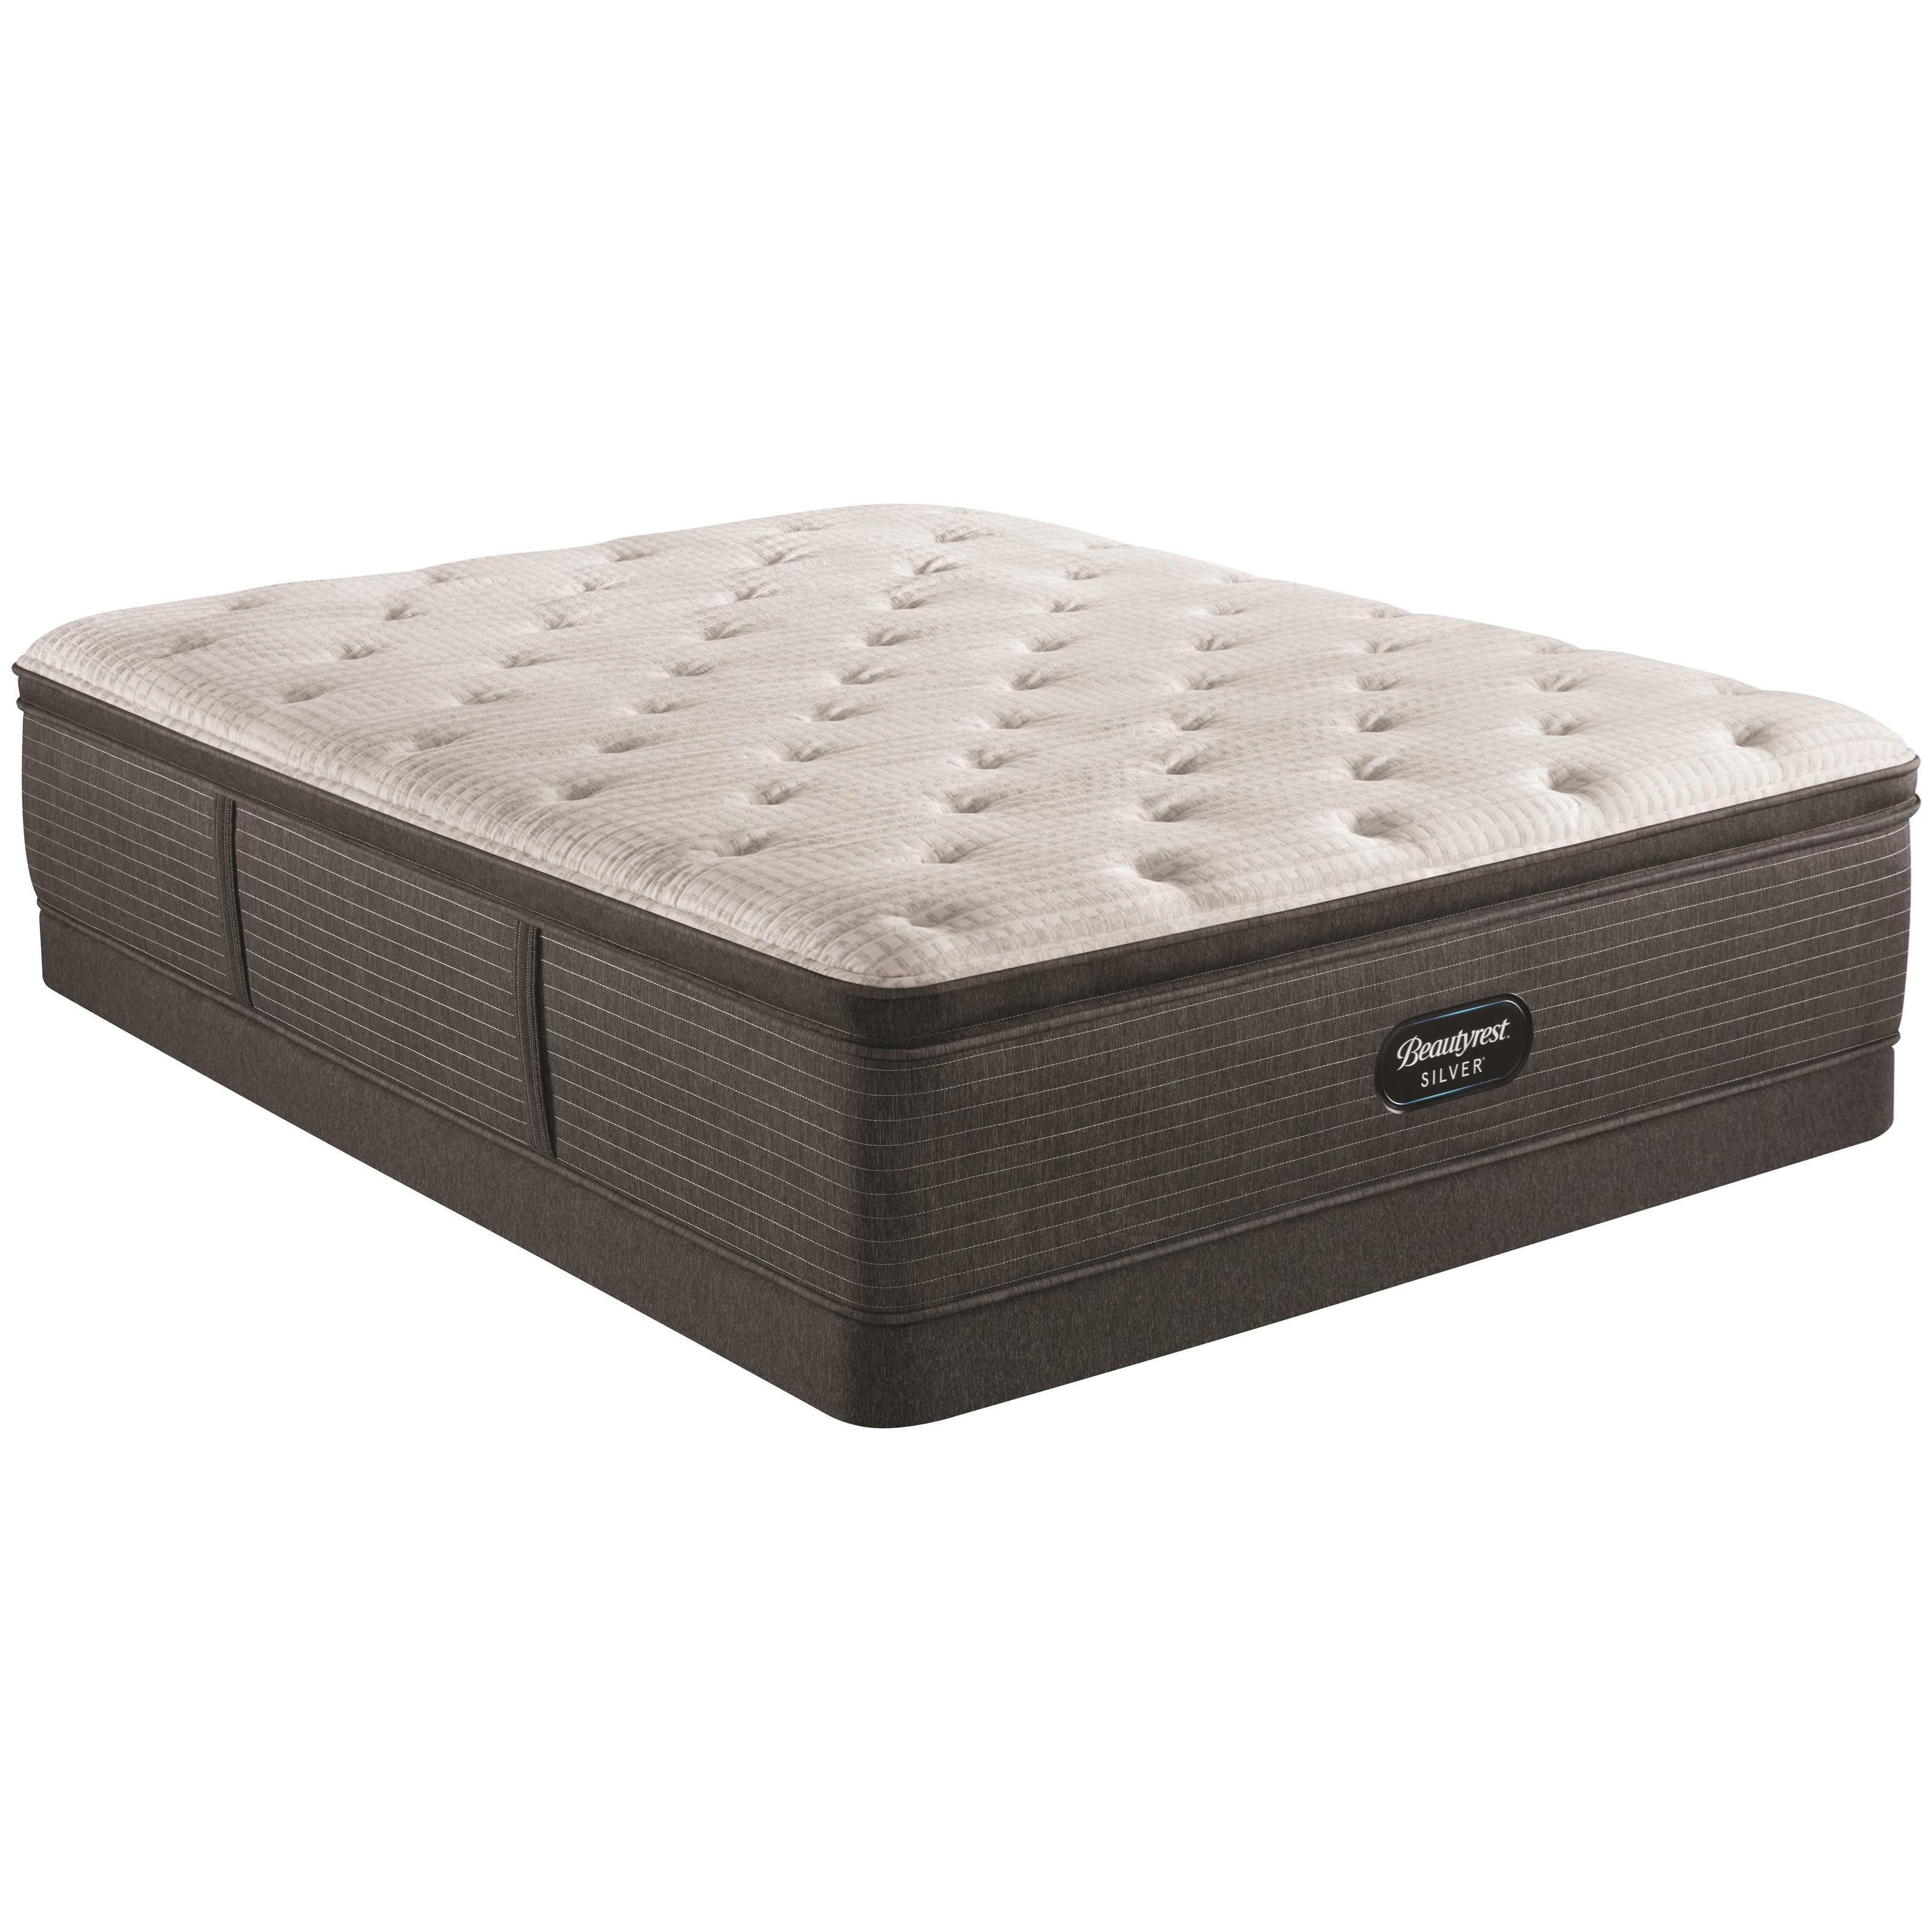 """BRS900-C Medium PT Cal King 16"""" Pocketed Coil LP Set by Beautyrest at Powell's Furniture and Mattress"""